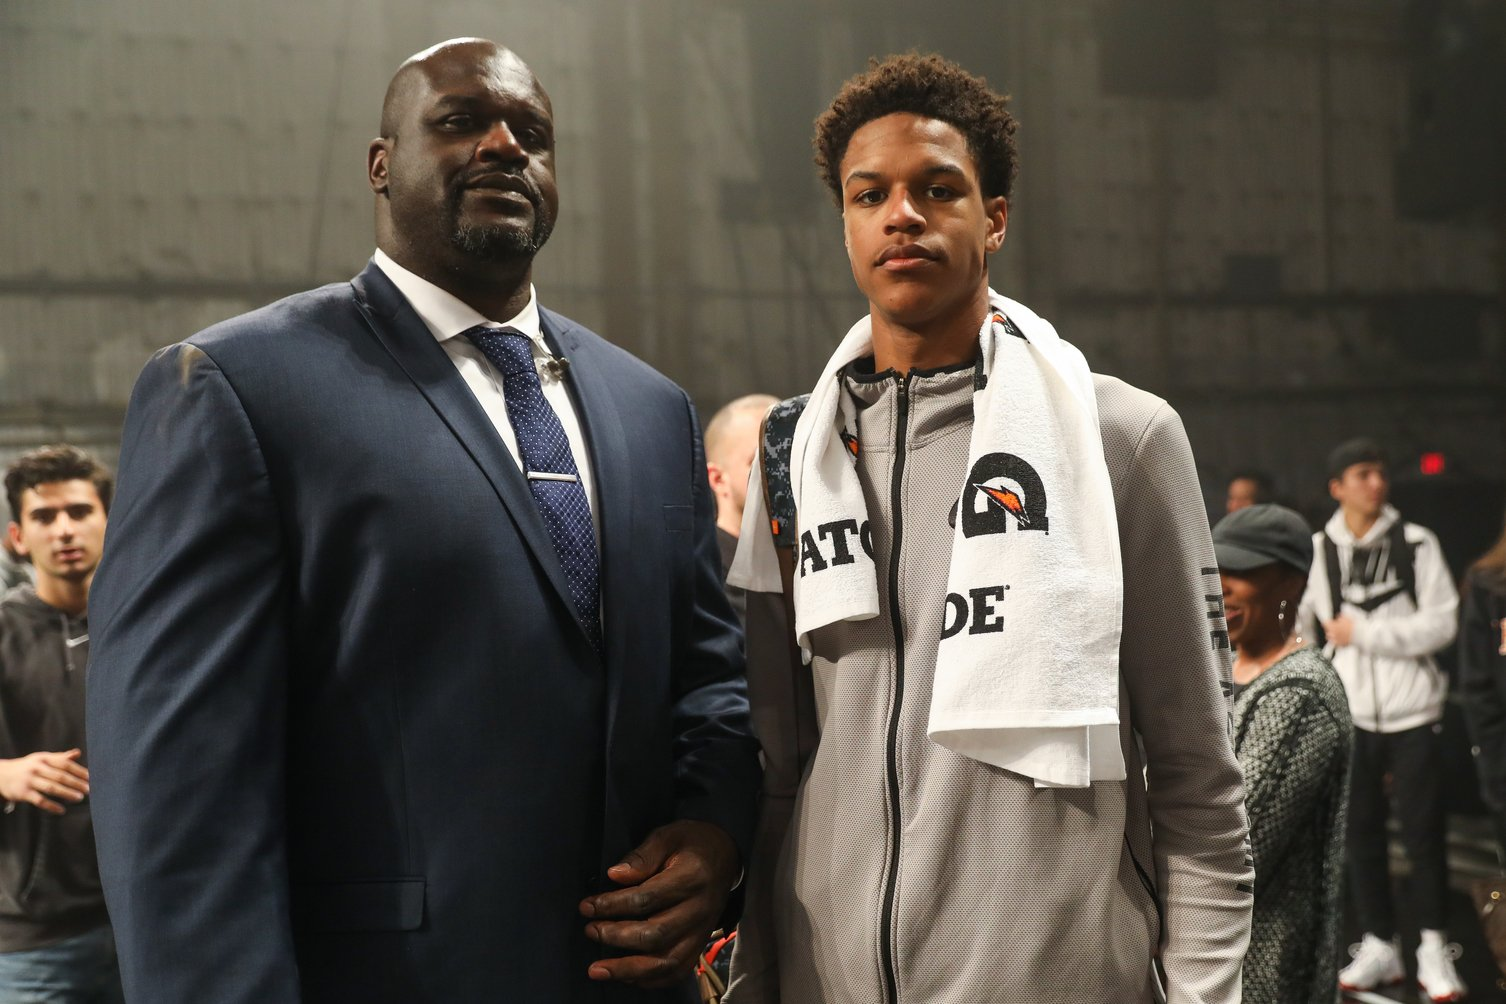 Shaquille O'Neal and Shareef O'Neal at the Jordan Brand Future of Flight Showcase on January 25, 2018 | Photo: Getty Images